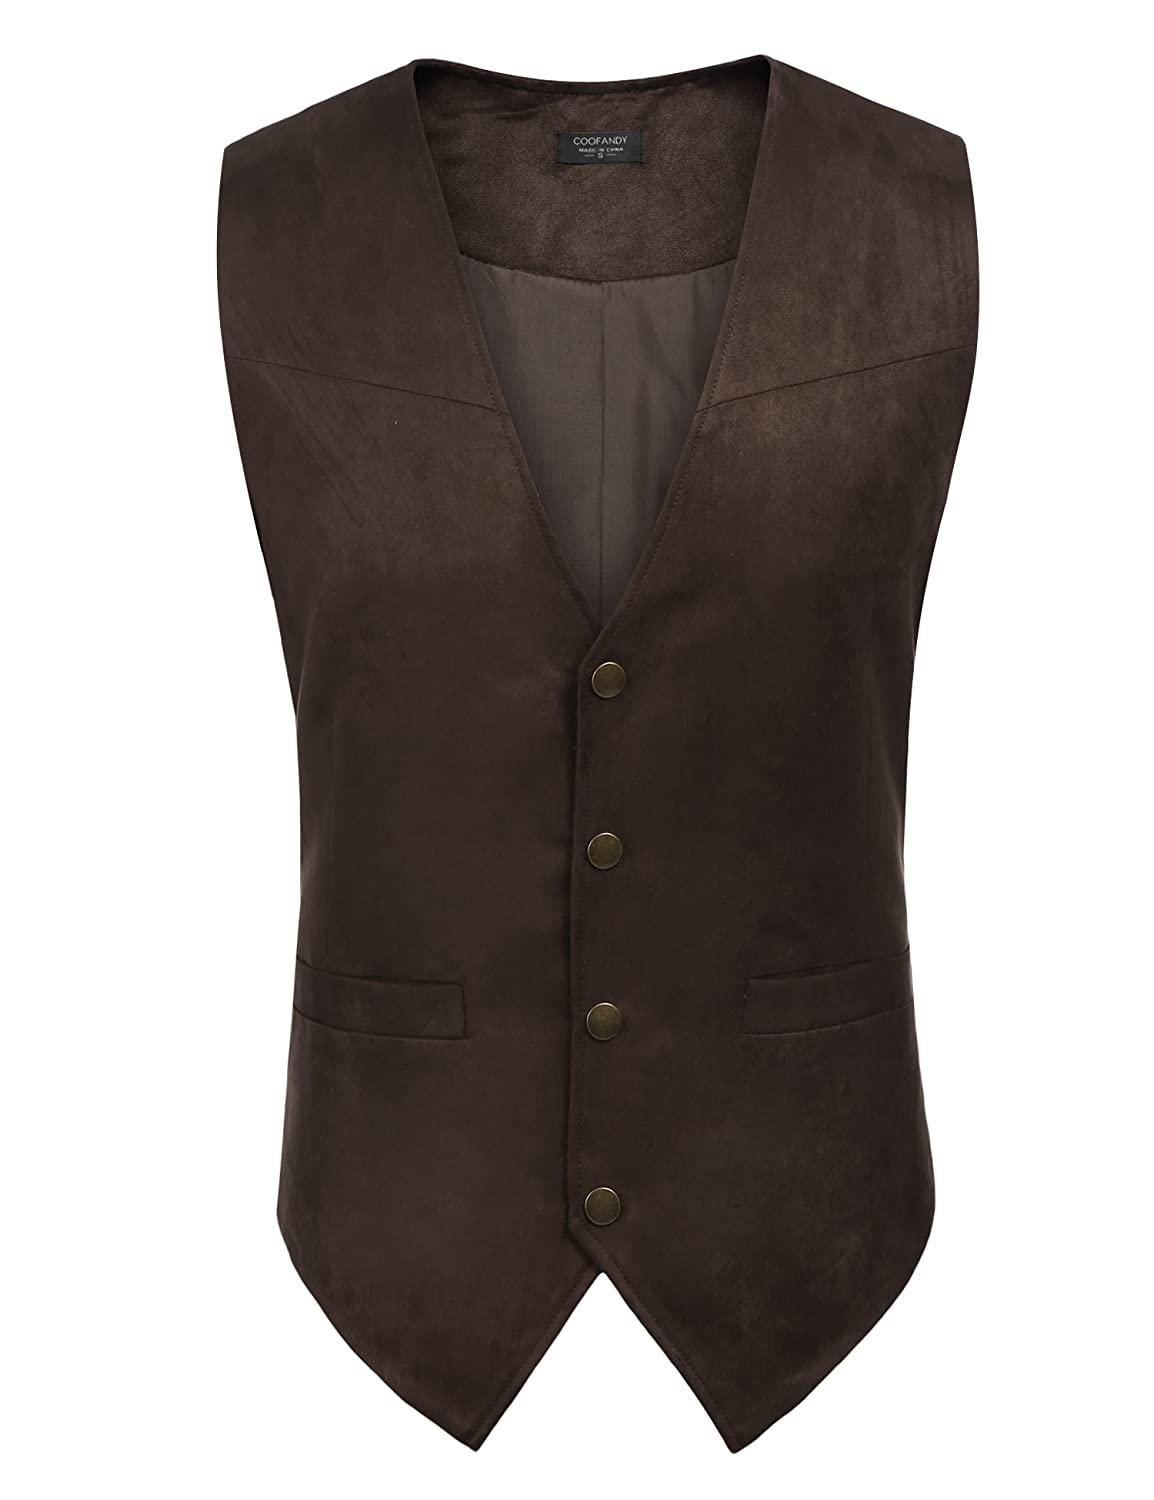 ccd80e4e7ade Coofandy Men\'s Cowhide Suede Vest Cowhide Suede Vest, supple and stylish  for everyday or dress-up wear!